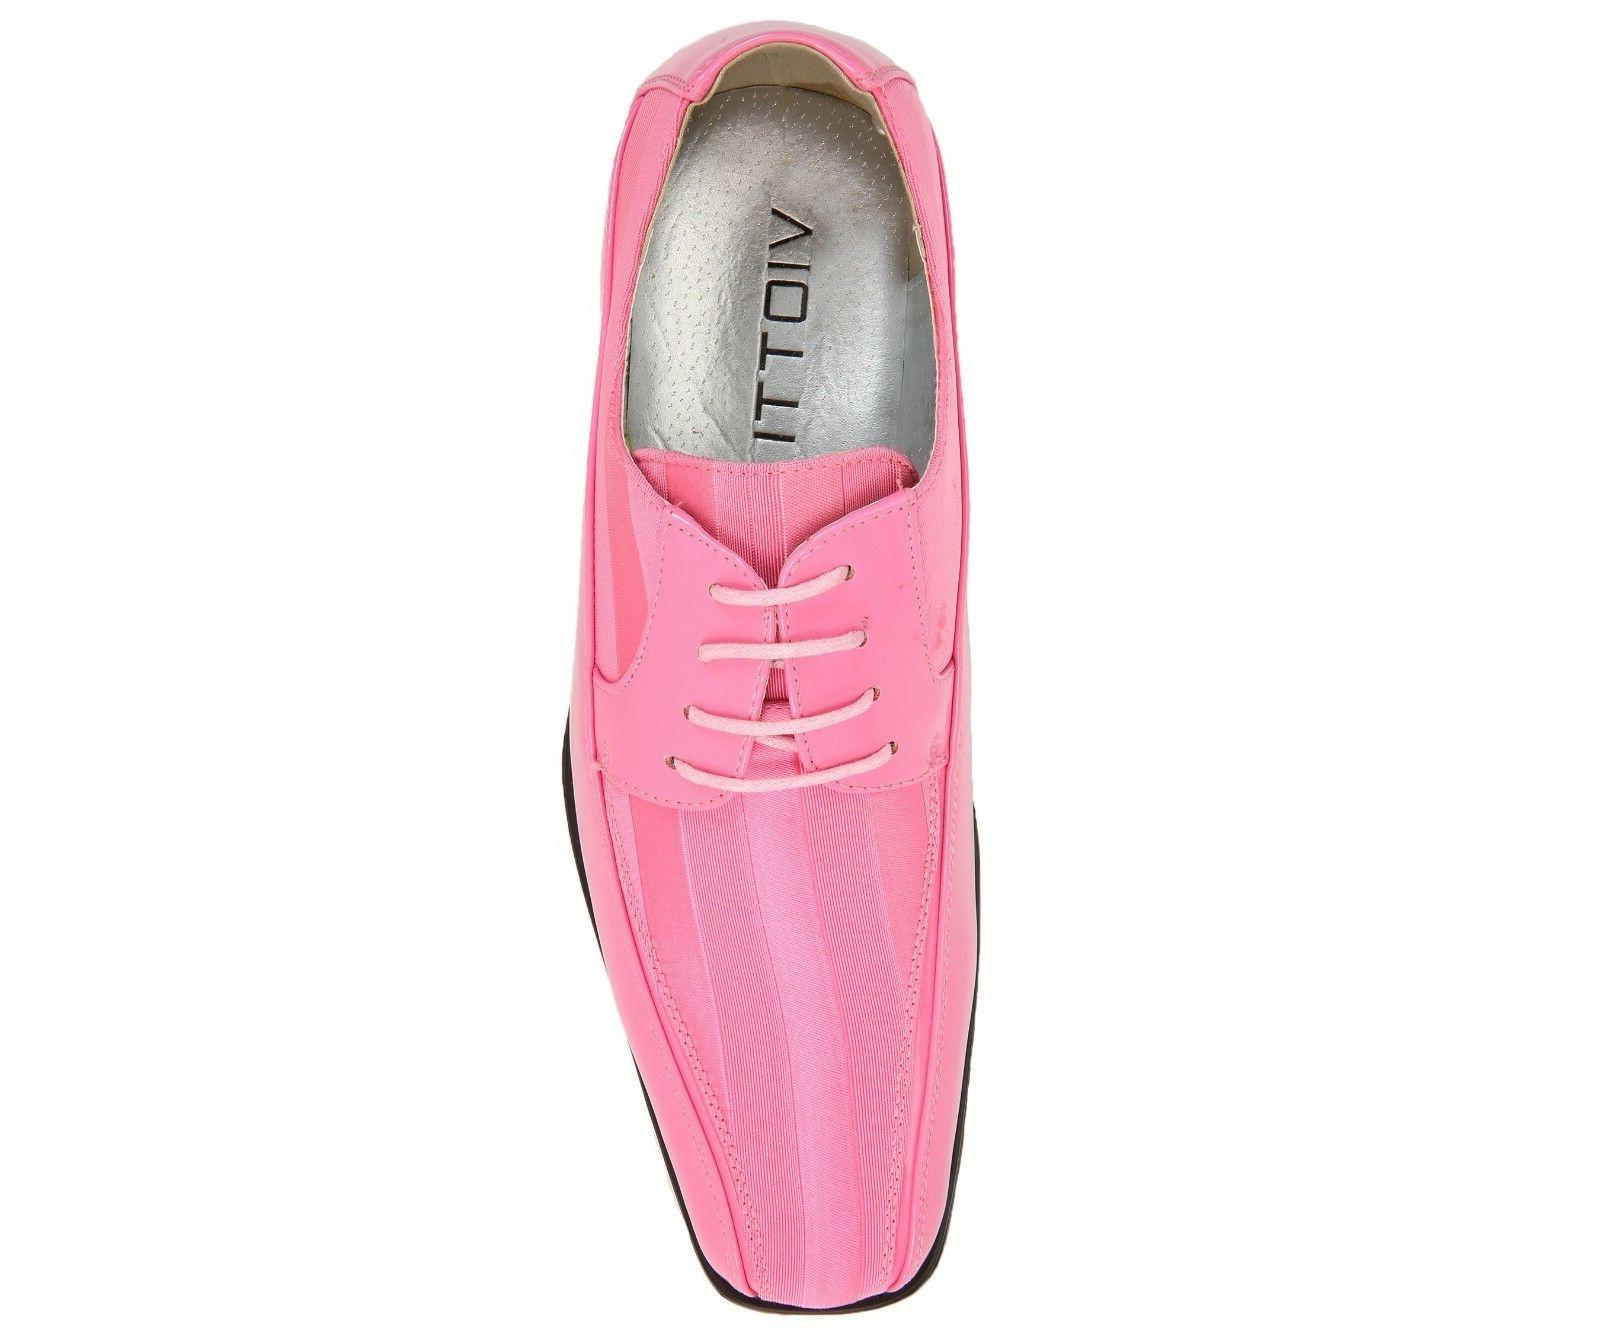 Viotti Patent Dress Satin Shoe